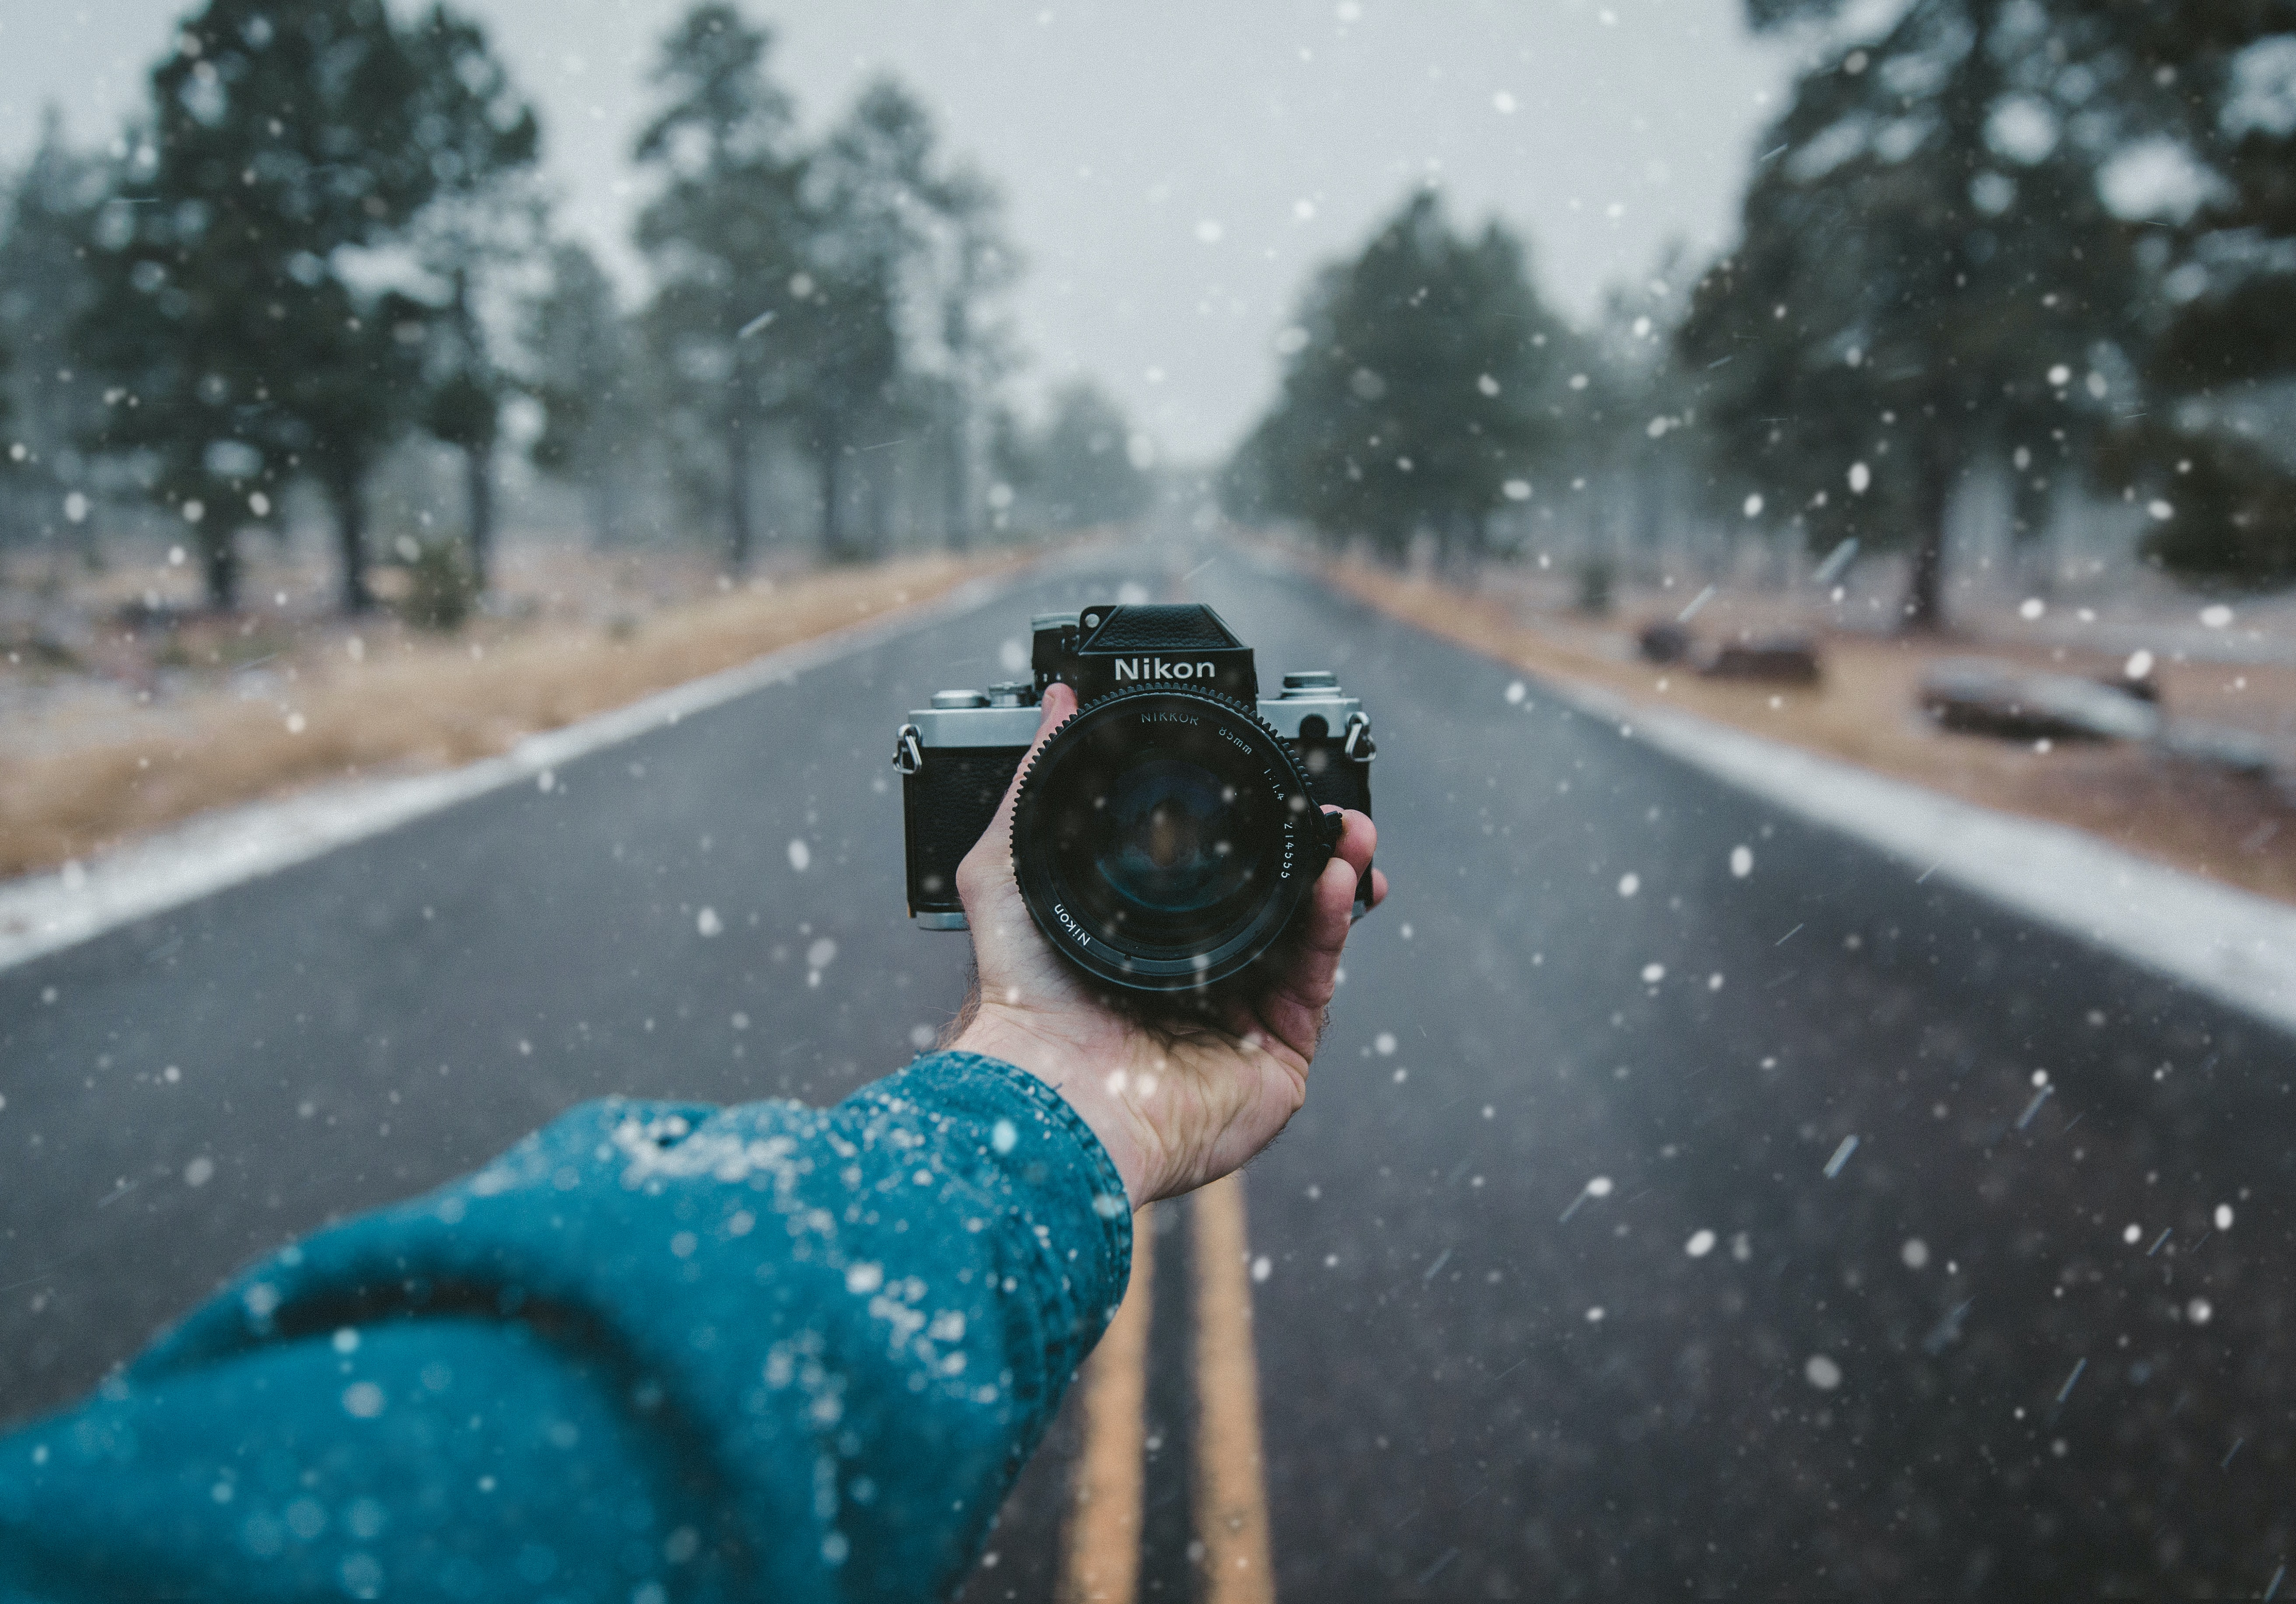 A Nikon camera is held facing the photographer standing on an empty road in the snow.